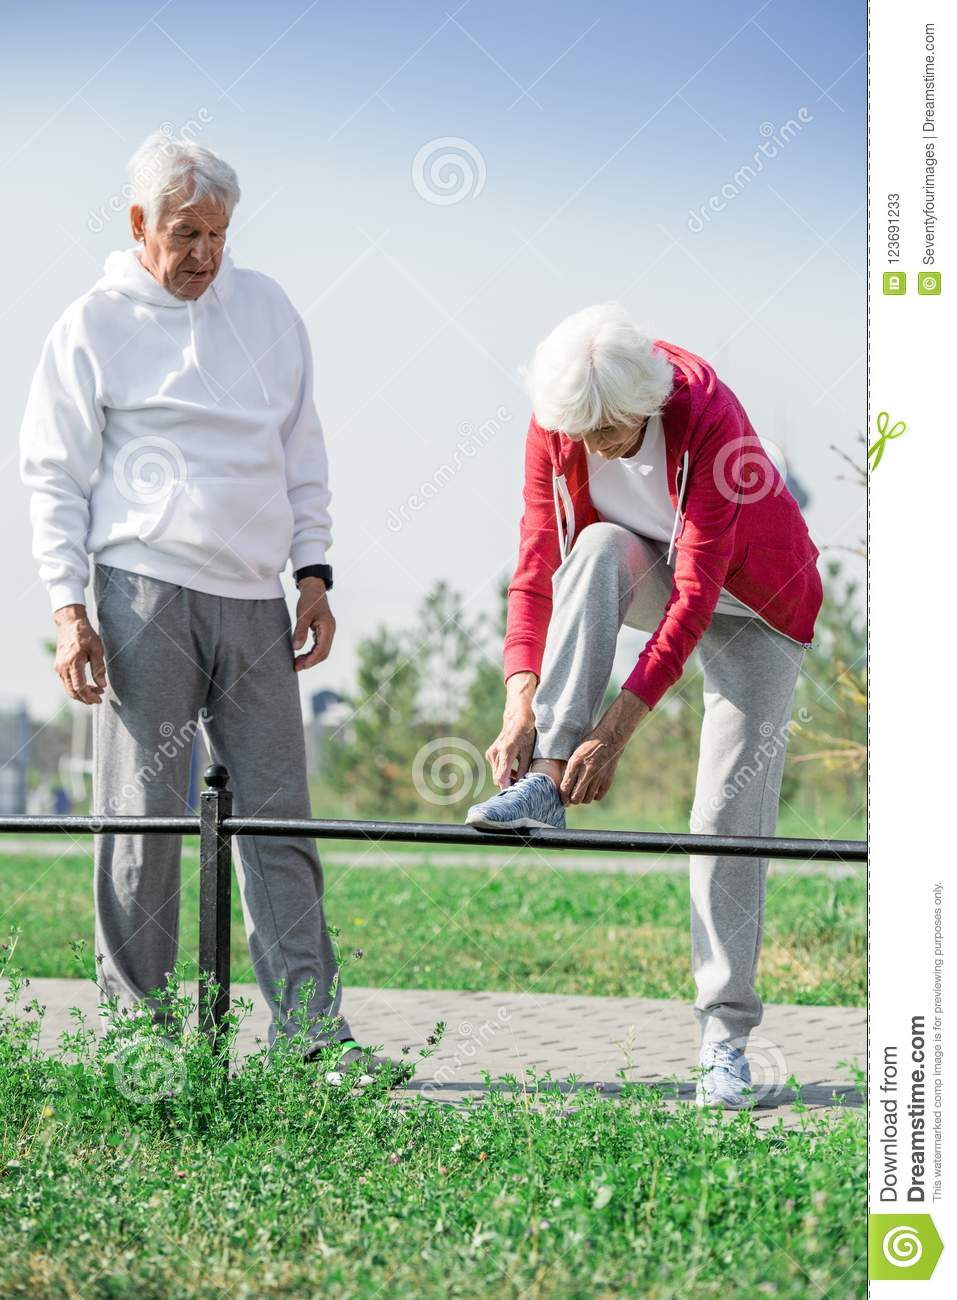 Active Mature Couple Outdoors Stock Image - Image of aging